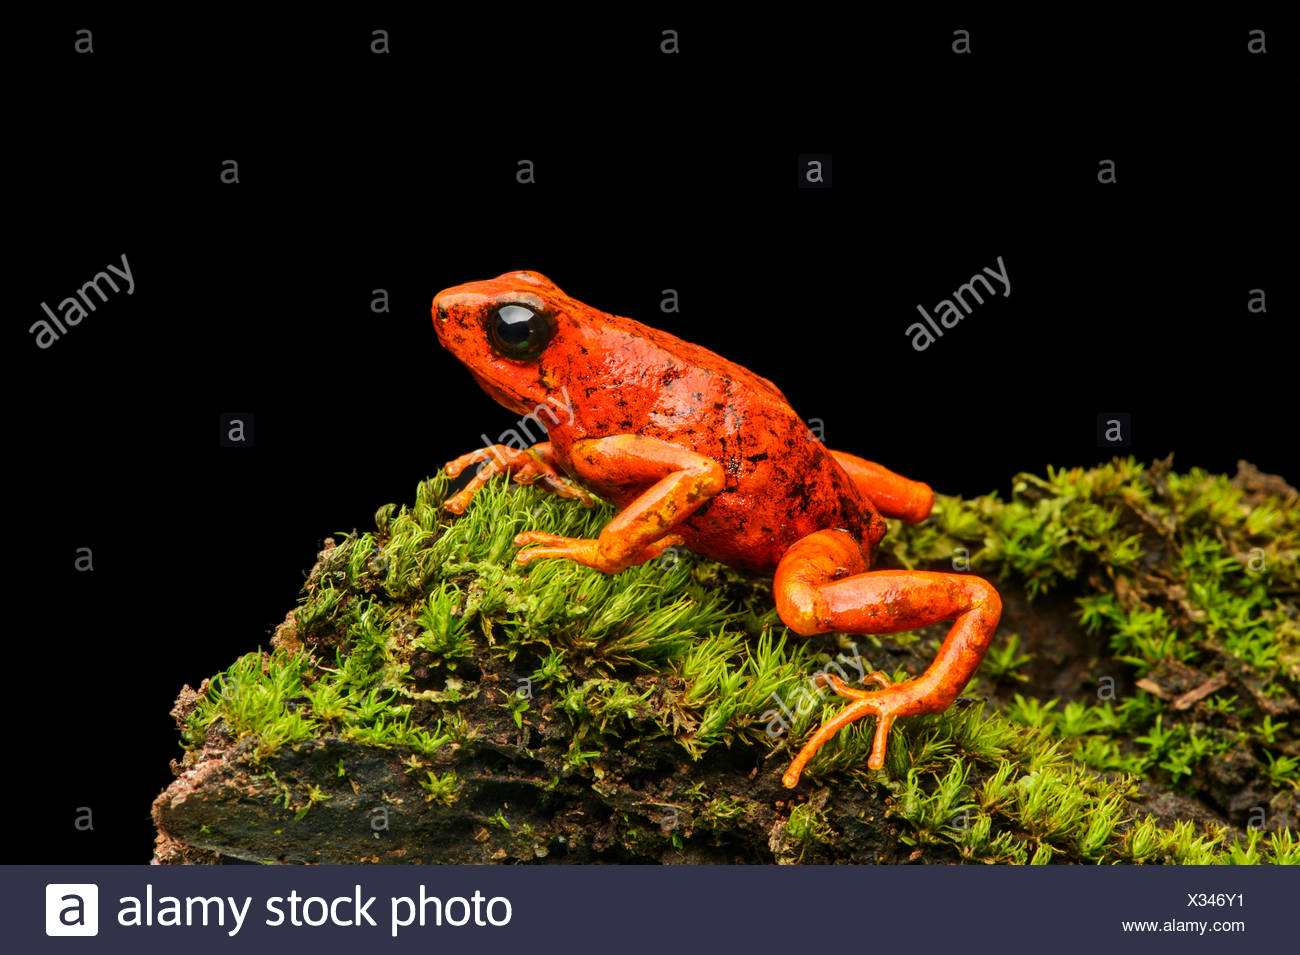 Little-devil poison frog ou diablito (Oophaga sylvatica) sur la mousse, Chocó rainforest, Équateur Photo Stock